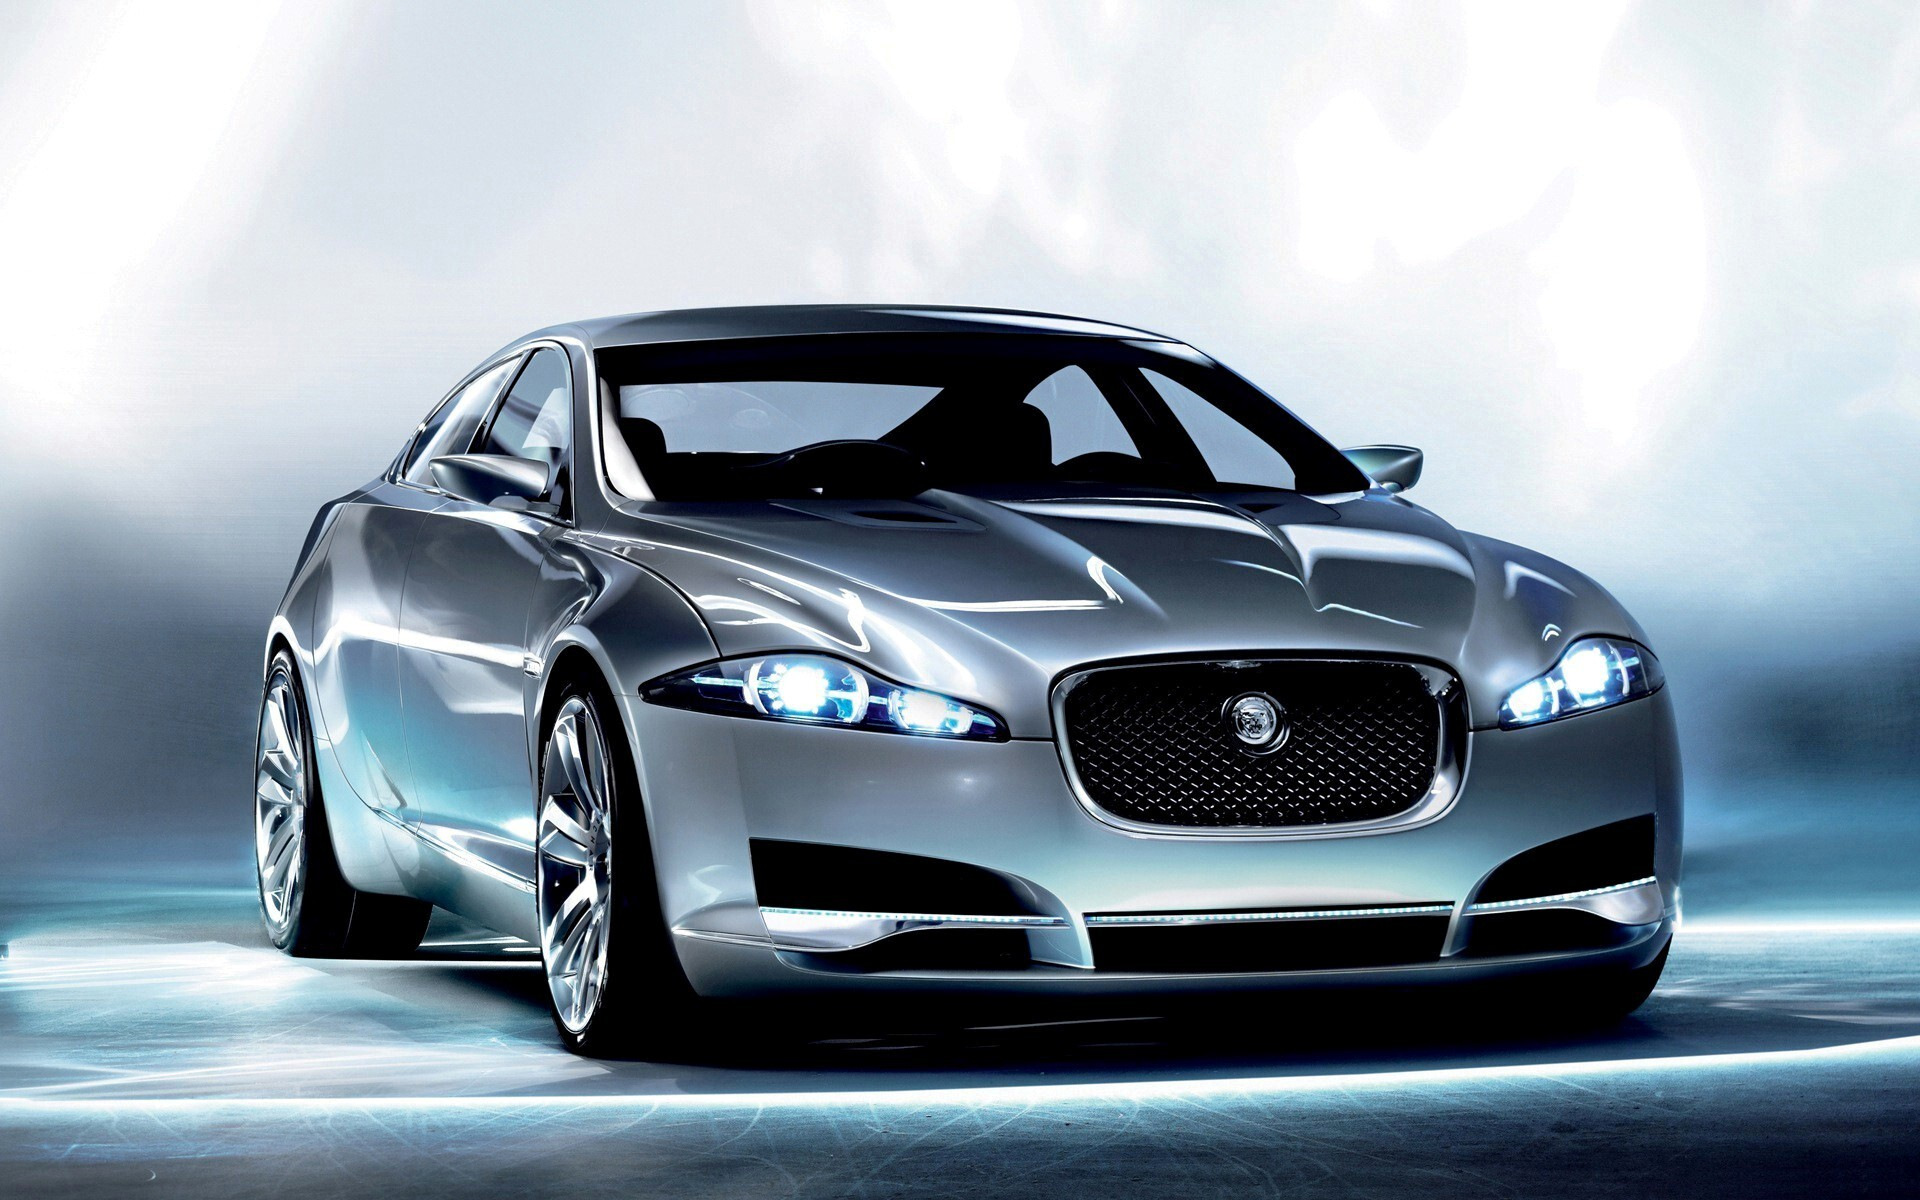 Jaguar cx f concept car wallpaper hd wallpapers jaguar cx f concept car wallpaper publicscrutiny Image collections